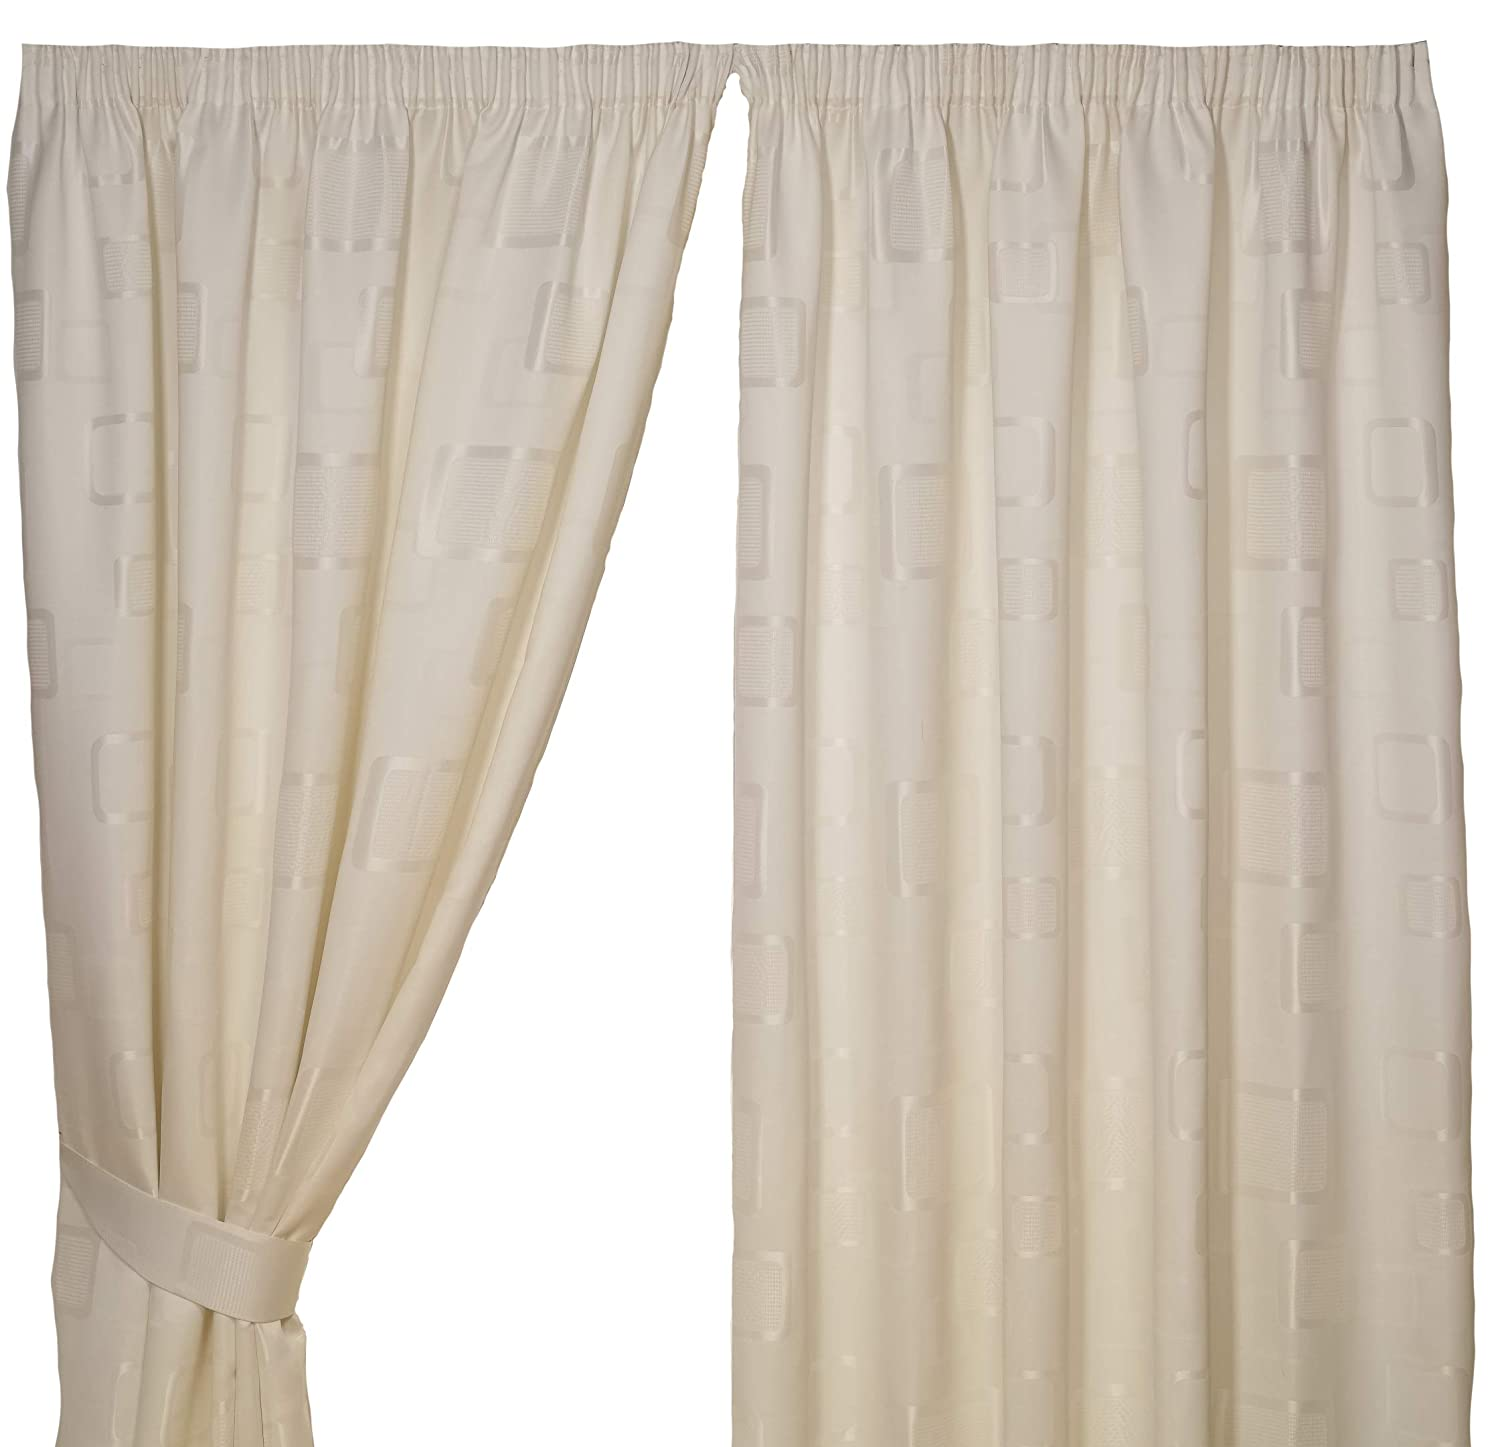 Impressions Milano Teal Fully Lined Readymade Curtain Pair 46in Wide x 54in Drop Approximately (116x137cm) Including One Pair Of Co-Ordinating Tiebacks. 4 Your Home